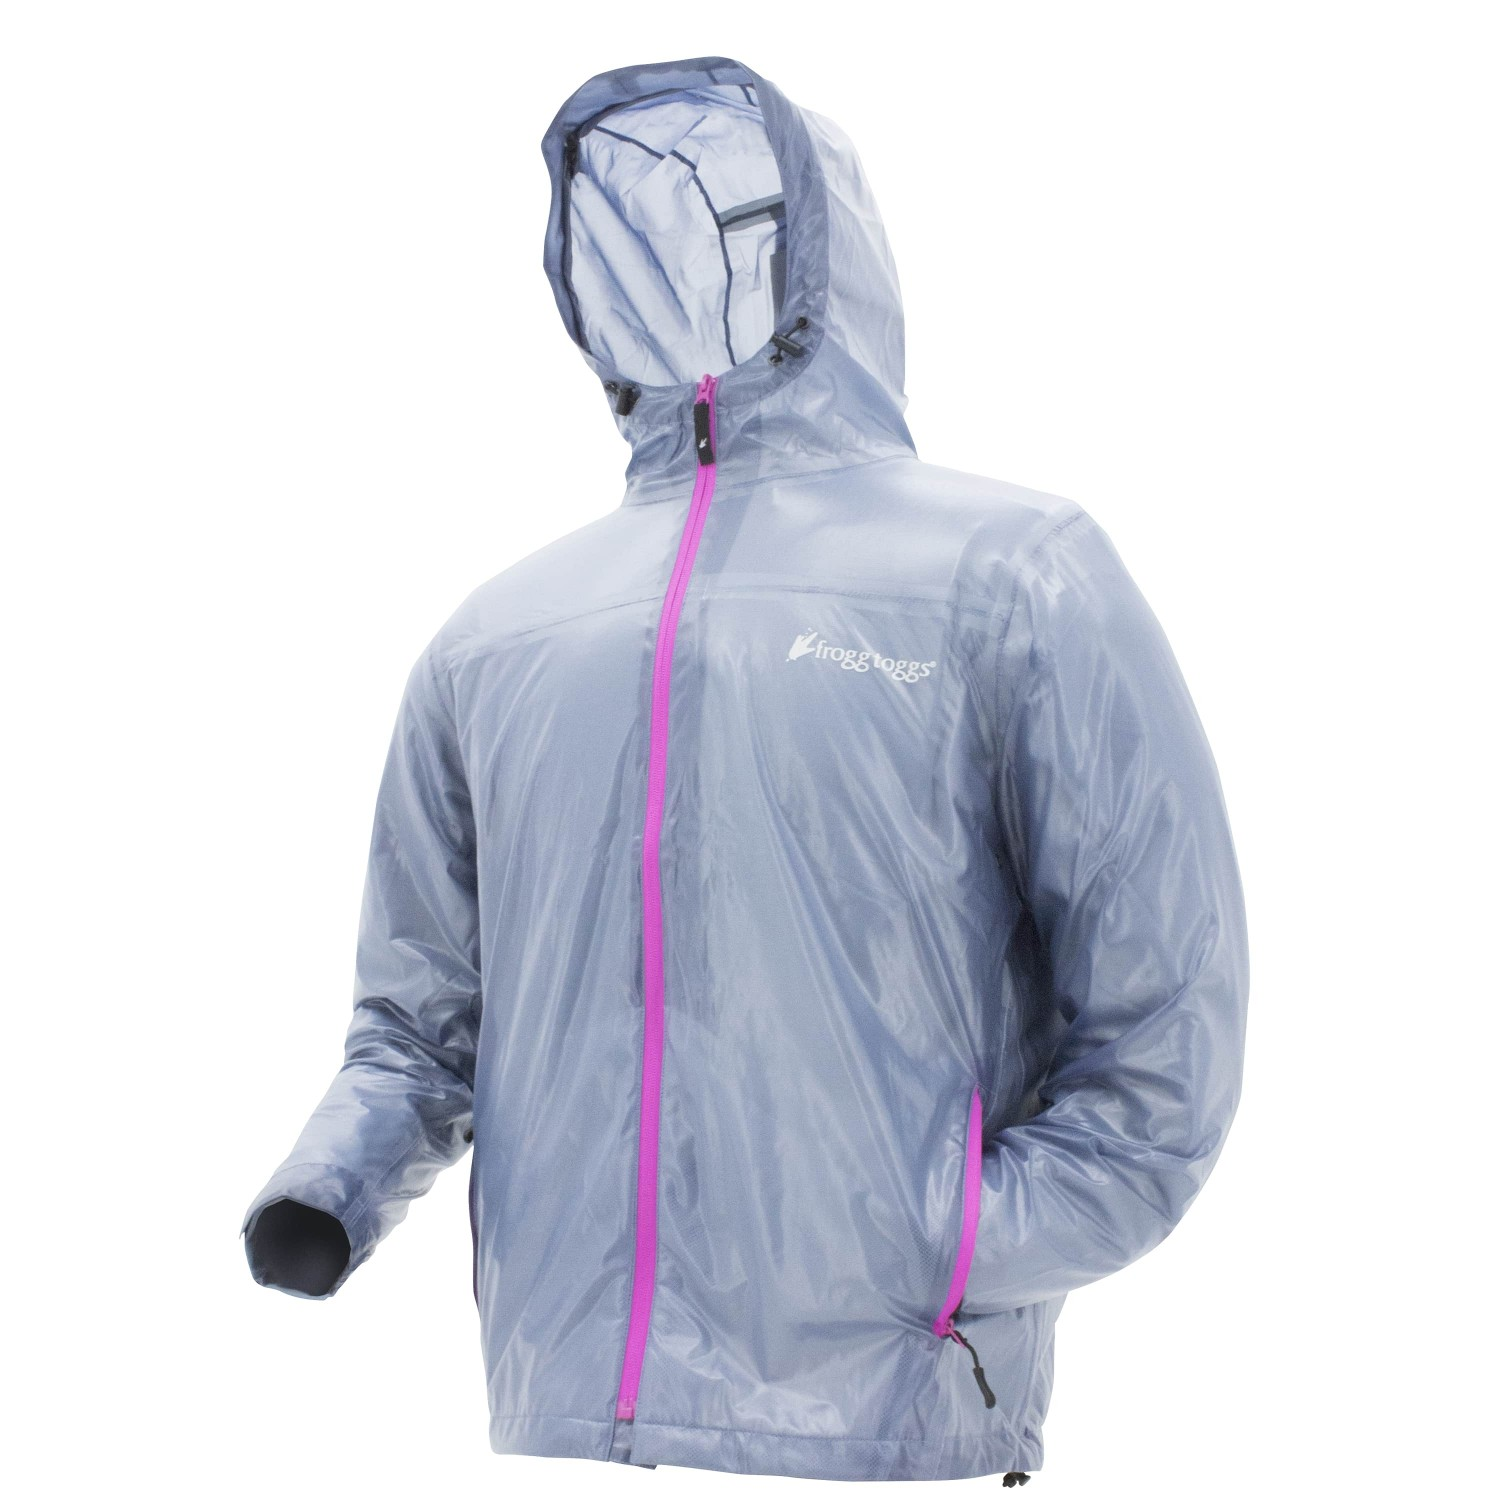 Frogg Toggs Womens Xtreme Lite Jacket Blue Large